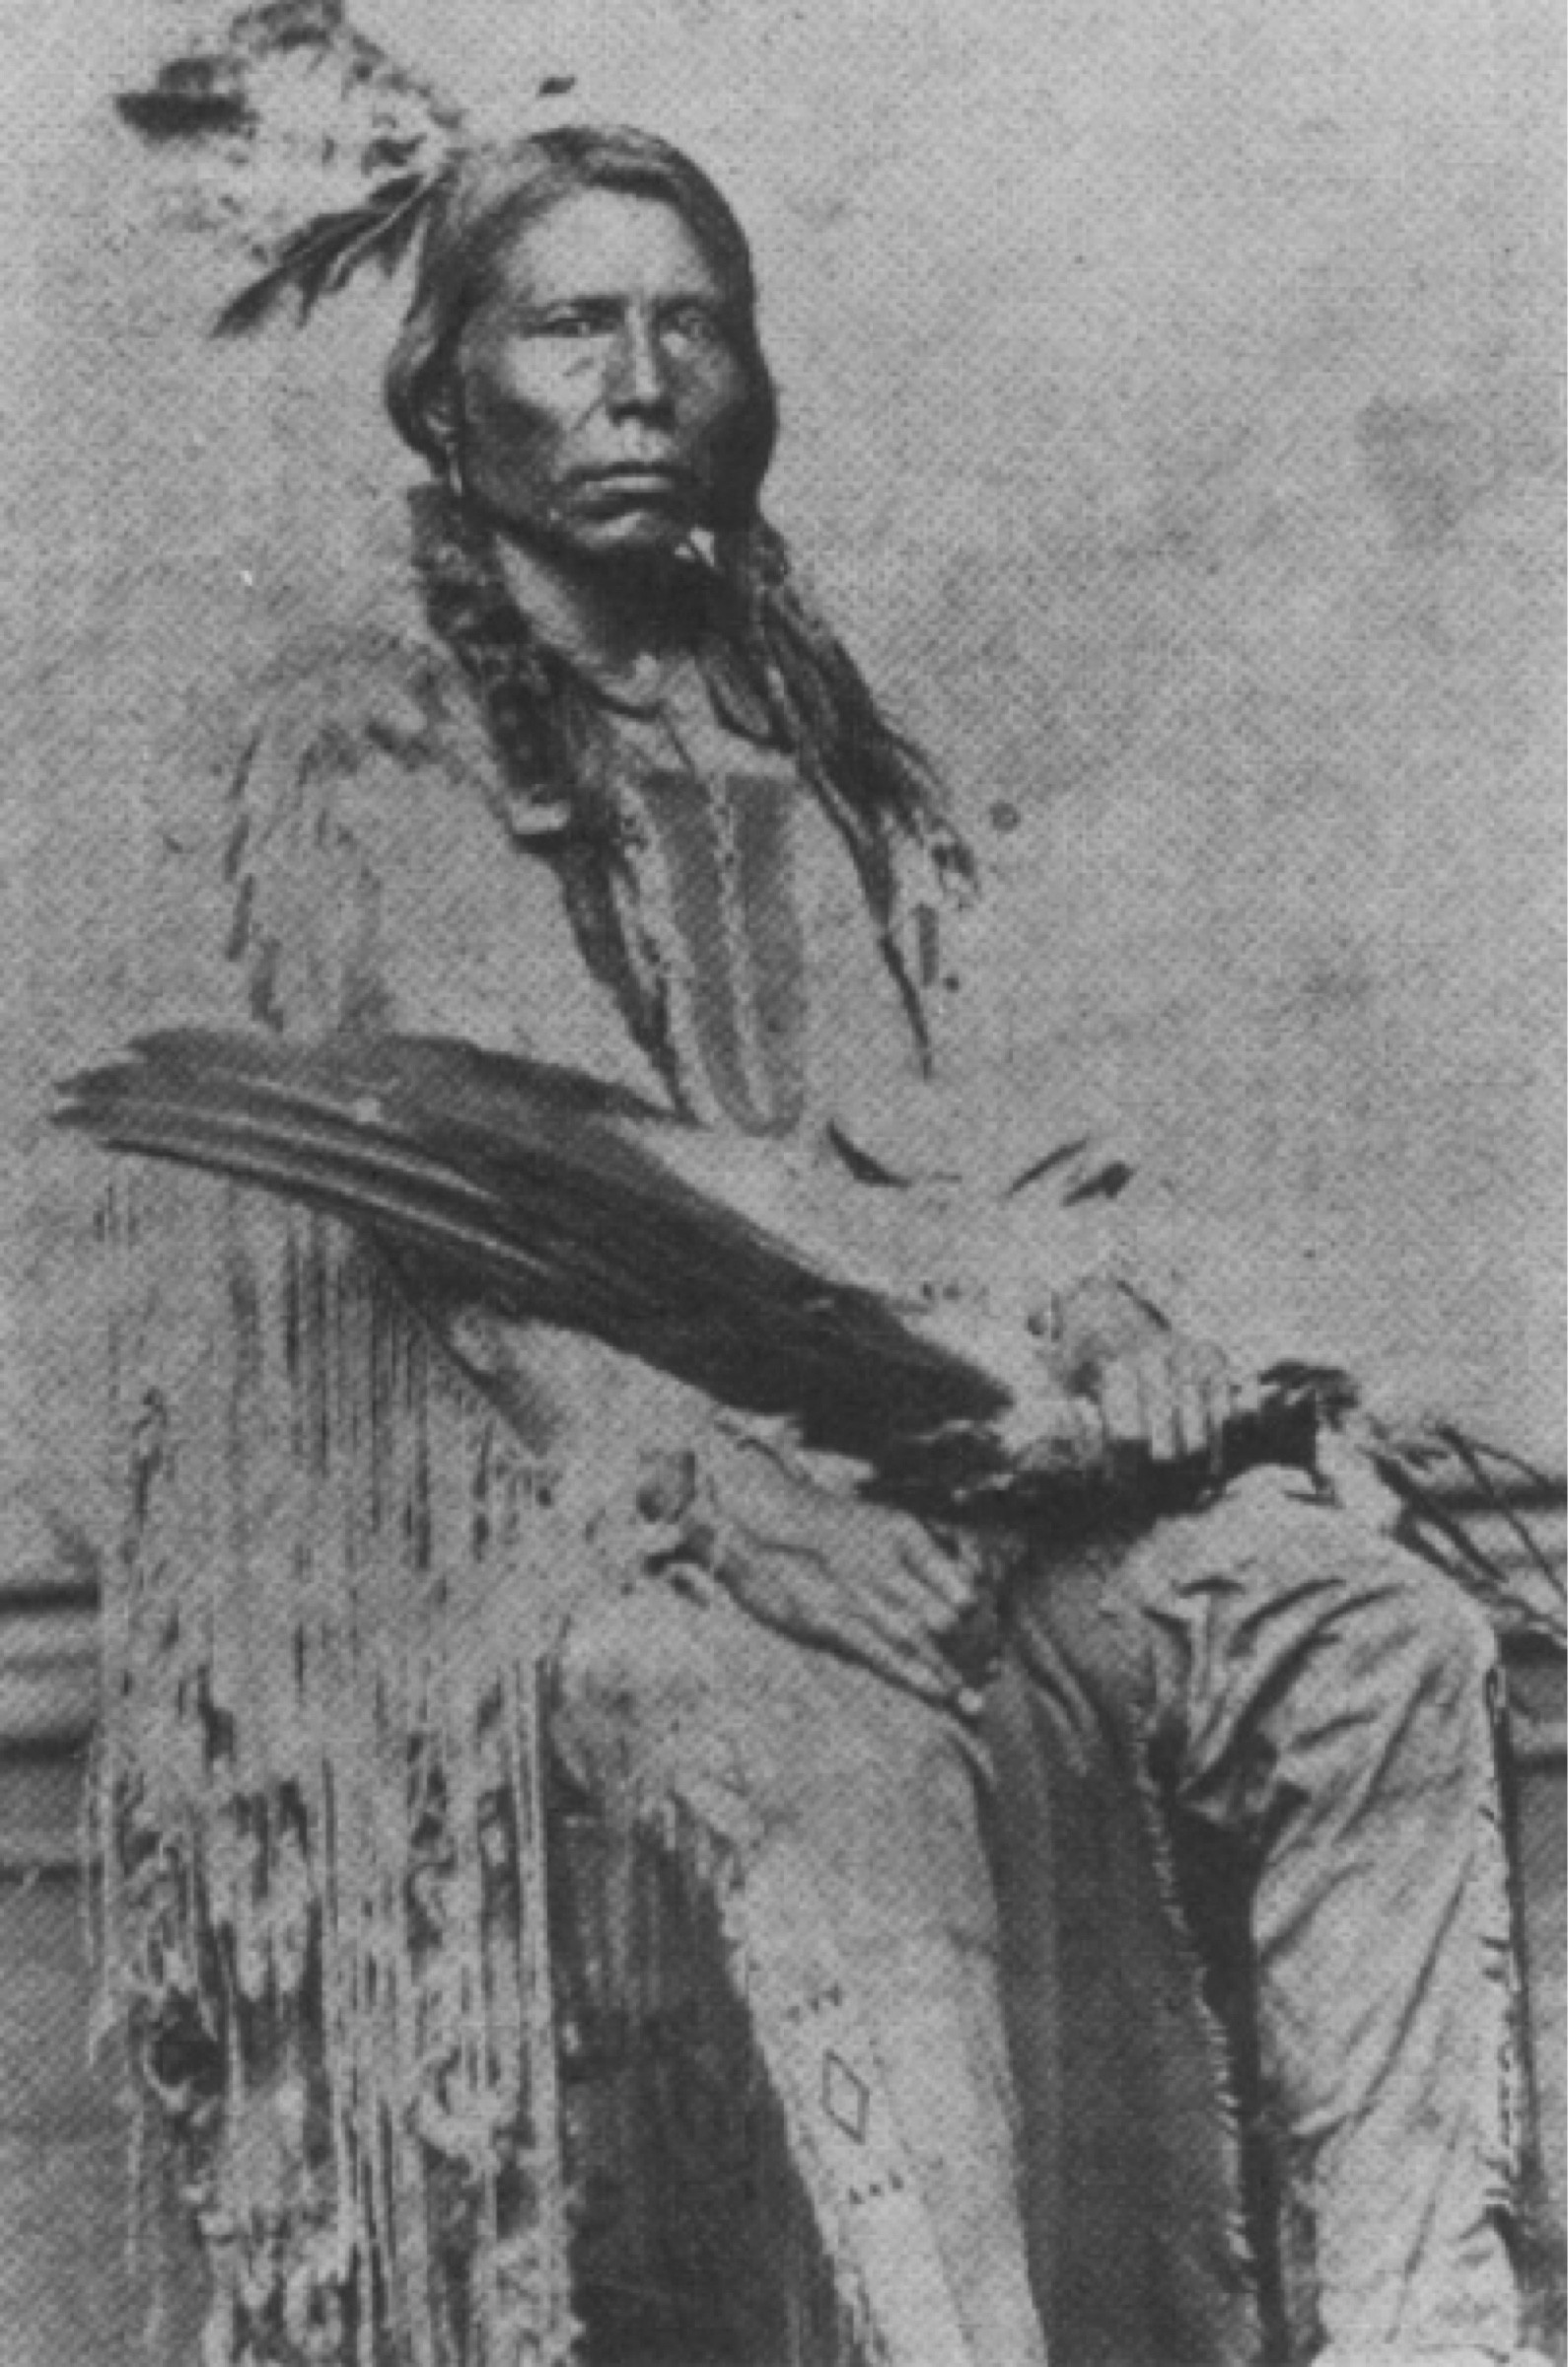 the man named Crazy Horse, sitting, he has long hair, and is wearing traditional dress.